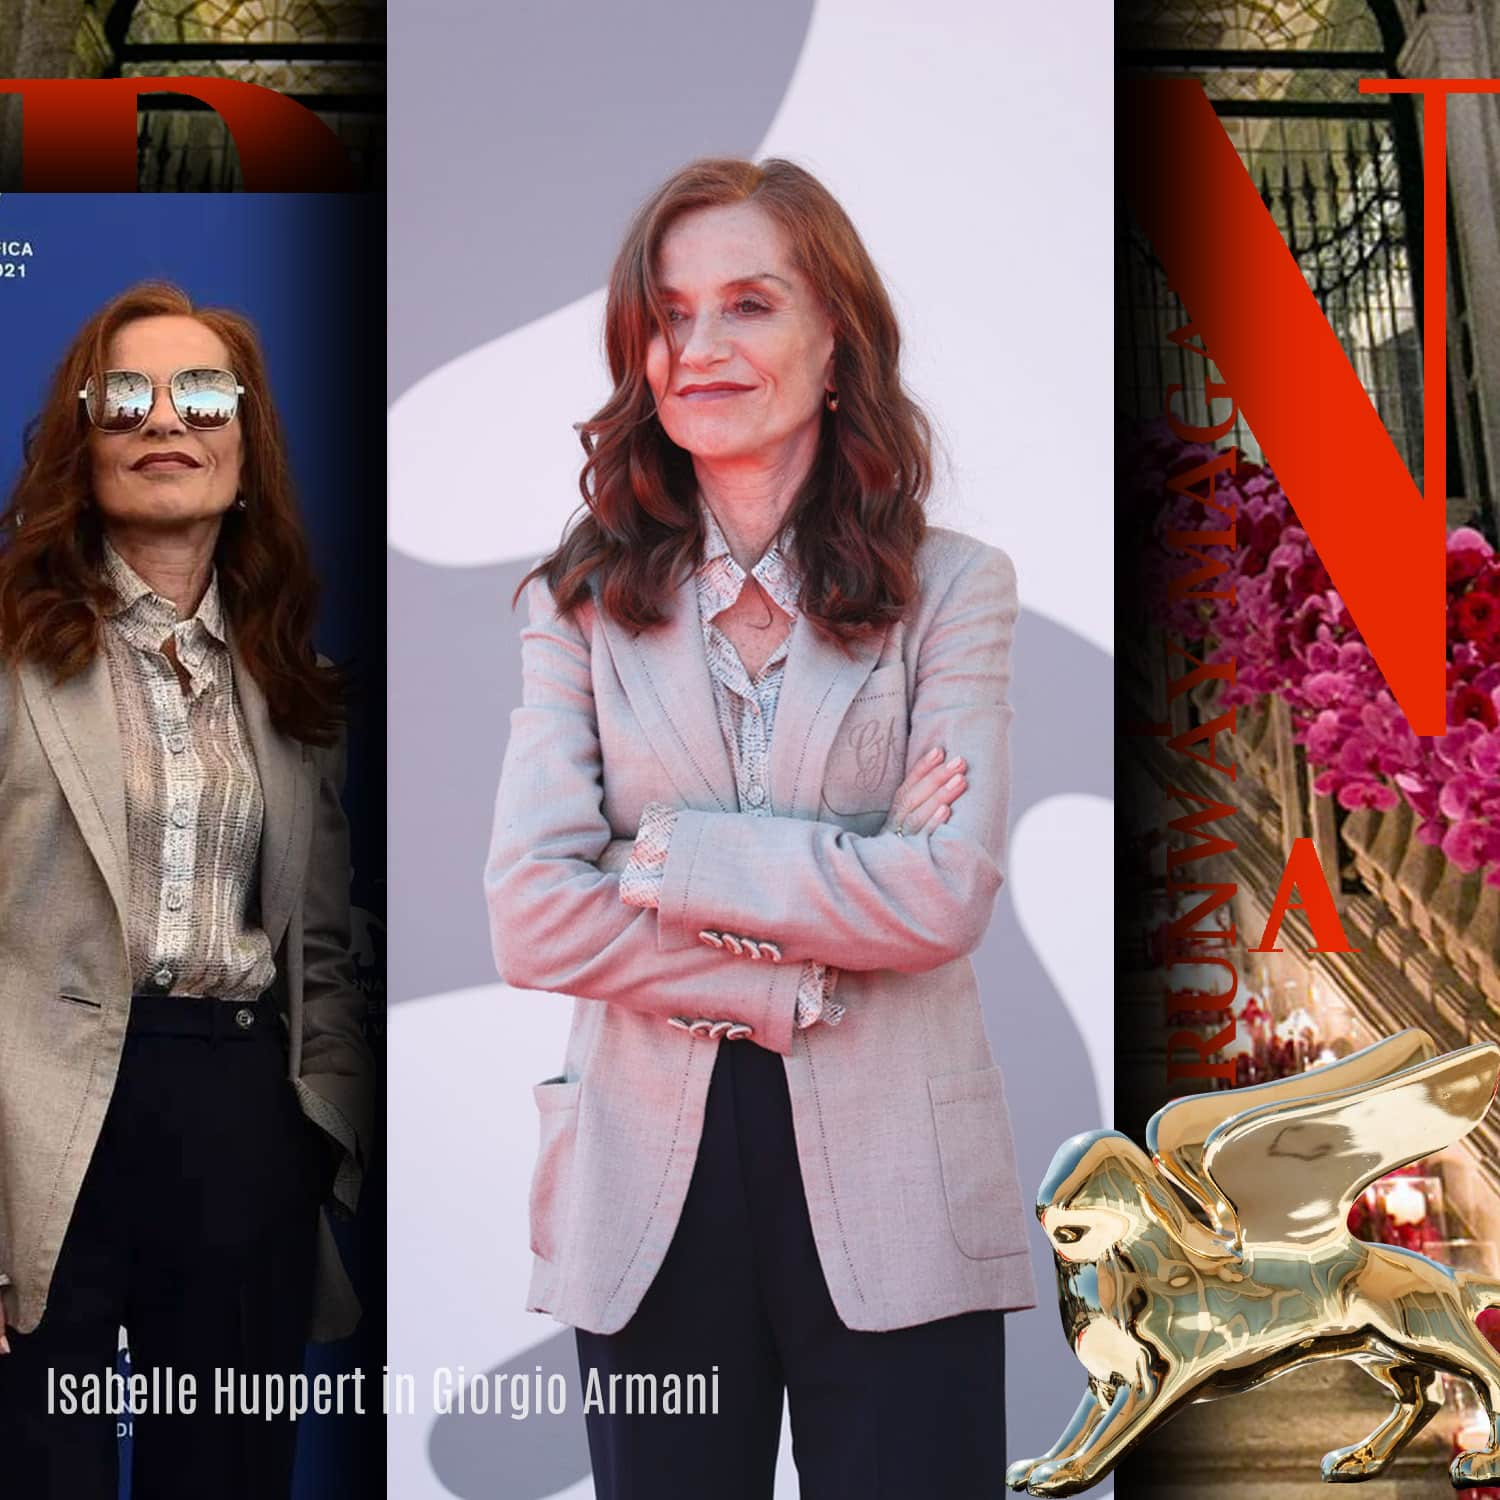 Isabelle Huppert in Giorgio Armani at 78th Venice International Film Festival by RUNWAY MAGAZINE